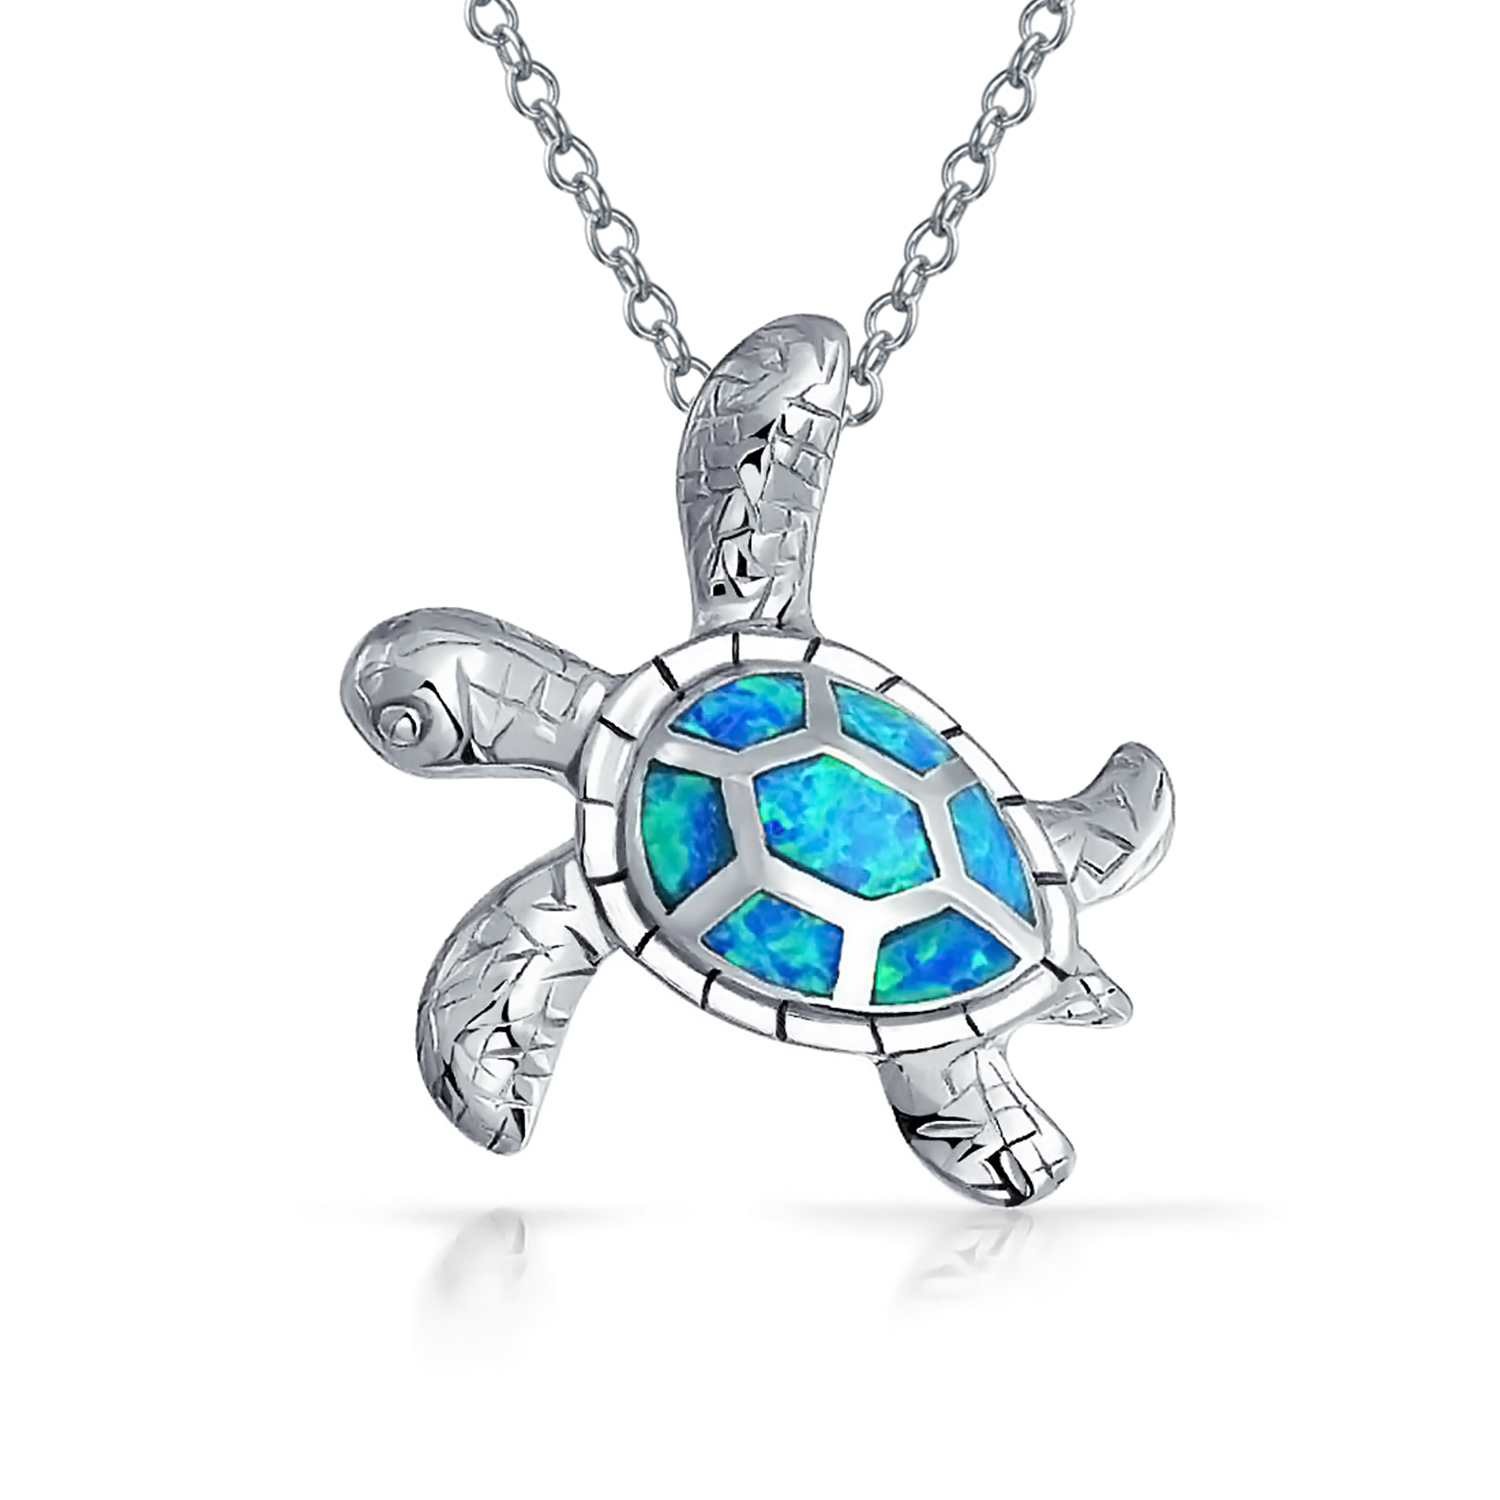 1500x1500 925 Silver Blue Opal Inlay Nautical Sea Turtle Necklace 18in